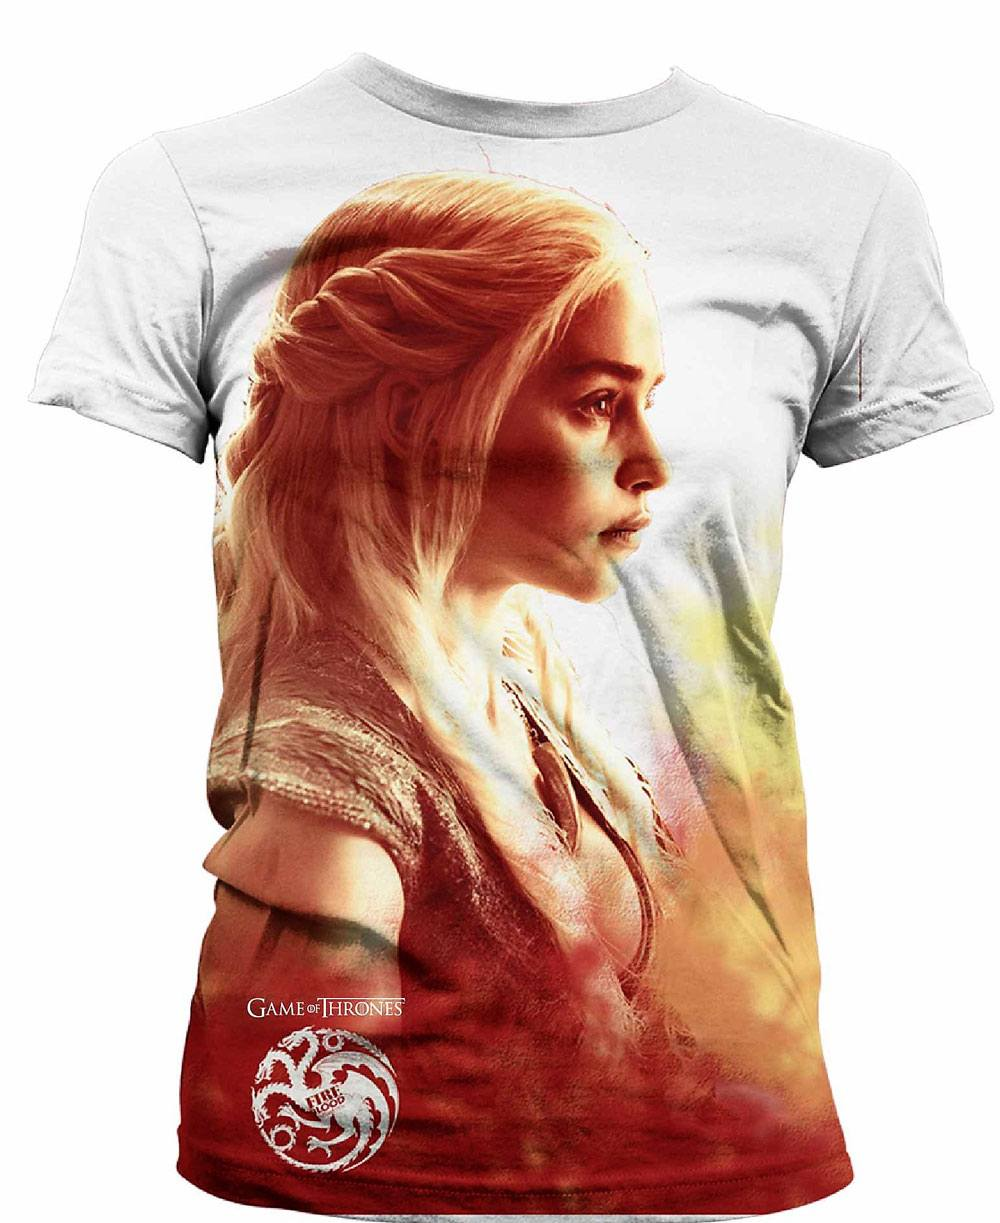 Game of Thrones Ladies Sublimation T-Shirt Daenerys Heatwave  Size XL